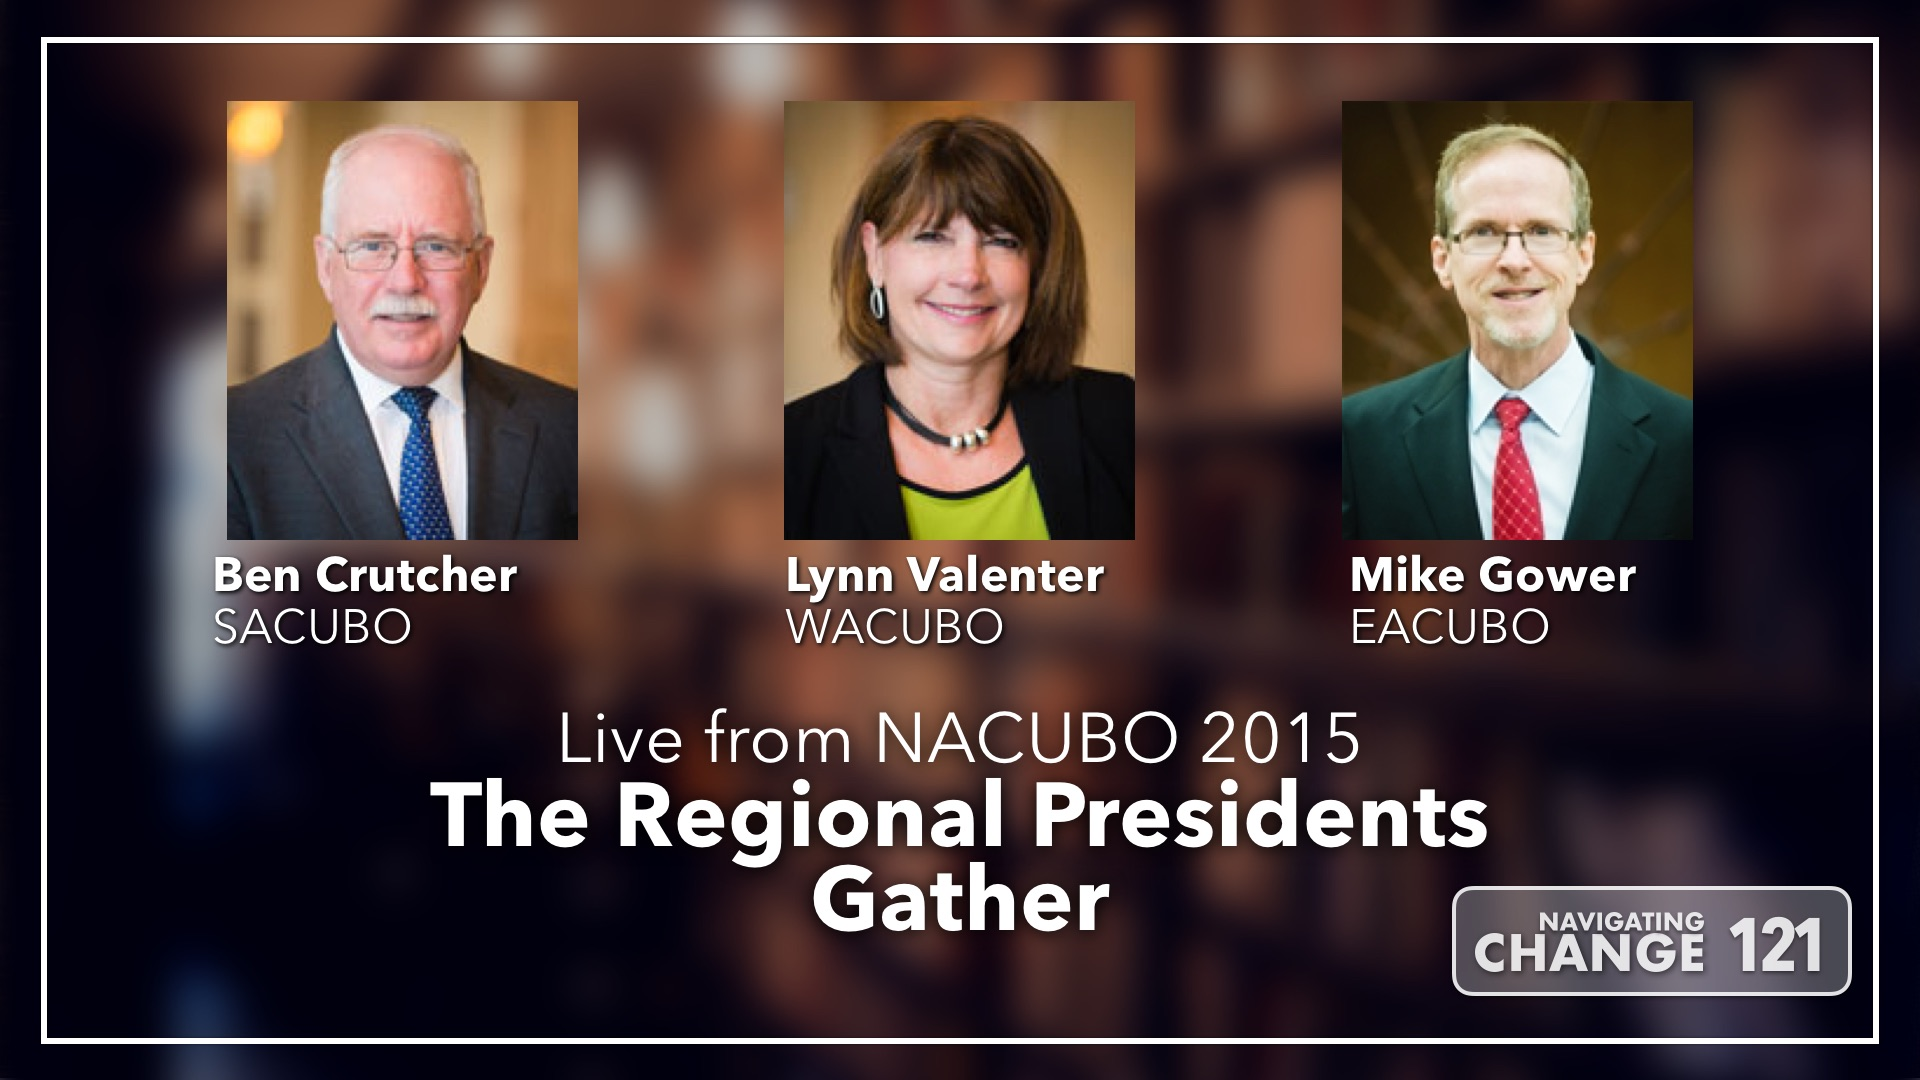 Listen to NACUBO 2015 Regional Presidents on Navigating Change The Education Podcast